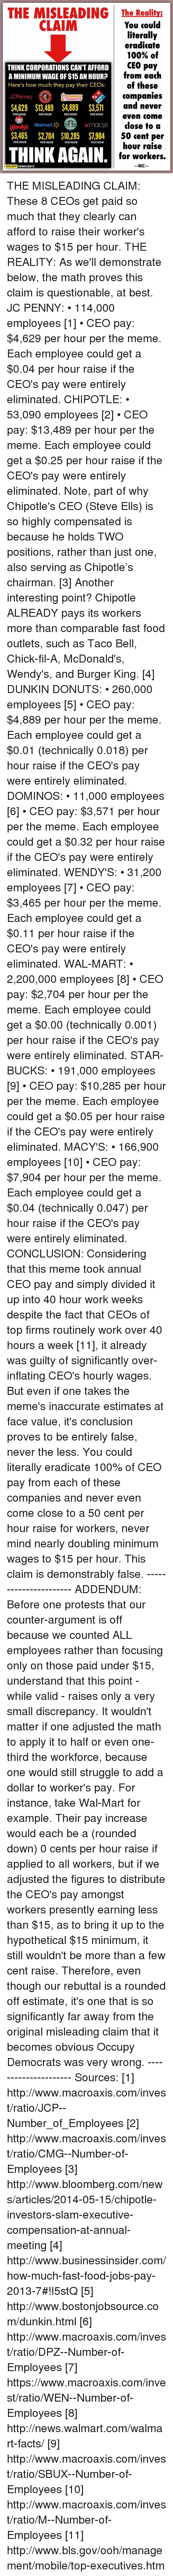 50 Cent, Burger King, and Chick-Fil-A: THE MISLEADING The Realitya  CLAIM  You could  literally  eradicate  100% of  THINK CORPORATIONS CANTAFFORD  CEO pay  AMINIMUM WAGE OF $15 AN HOUR? from each  of these  Here's how much they pay their CEOs:  (O  JCPenney  companies  and never  $4,629 $13,489 $4889 $3571  PER HOUR  PER HOUR  PER HOUR  PER HOUR  even come  KABUA  close to a  Wendys Walmart  $3,465 $2,704 $10,285 $7904  50 cent per  PER HOUR  PER HOUR  PER HOUR  PER HOUR  hour raise  THINK AGAIN  for workers.  WAC  OCCUPY DEMOCRATS THE MISLEADING CLAIM: These 8 CEOs get paid so much that they clearly can afford to raise their worker's wages to $15 per hour.   THE REALITY: As we'll demonstrate below, the math proves this claim is questionable, at best.  JC PENNY: • 114,000 employees [1] • CEO pay: $4,629 per hour per the meme. Each employee could get a $0.04 per hour raise if the CEO's pay were entirely eliminated.   CHIPOTLE: • 53,090 employees [2] • CEO pay: $13,489 per hour per the meme. Each employee could get a $0.25 per hour raise if the CEO's pay were entirely eliminated.   Note, part of why Chipotle's CEO (Steve Ells) is so highly compensated is because he holds TWO positions, rather than just one, also serving as Chipotle's chairman. [3]  Another interesting point? Chipotle ALREADY pays its workers more than comparable fast food outlets, such as Taco Bell, Chick-fil-A, McDonald's, Wendy's, and Burger King. [4]  DUNKIN DONUTS: • 260,000 employees [5] • CEO pay: $4,889 per hour per the meme. Each employee could get a $0.01 (technically 0.018) per hour raise if the CEO's pay were entirely eliminated.   DOMINOS: • 11,000 employees [6] • CEO pay: $3,571 per hour per the meme. Each employee could get a $0.32 per hour raise if the CEO's pay were entirely eliminated.   WENDY'S: • 31,200 employees [7] • CEO pay: $3,465 per hour per the meme. Each employee could get a $0.11 per hour raise if the CEO's pay were entirely eliminated.   WAL-MART: • 2,200,000 employees [8